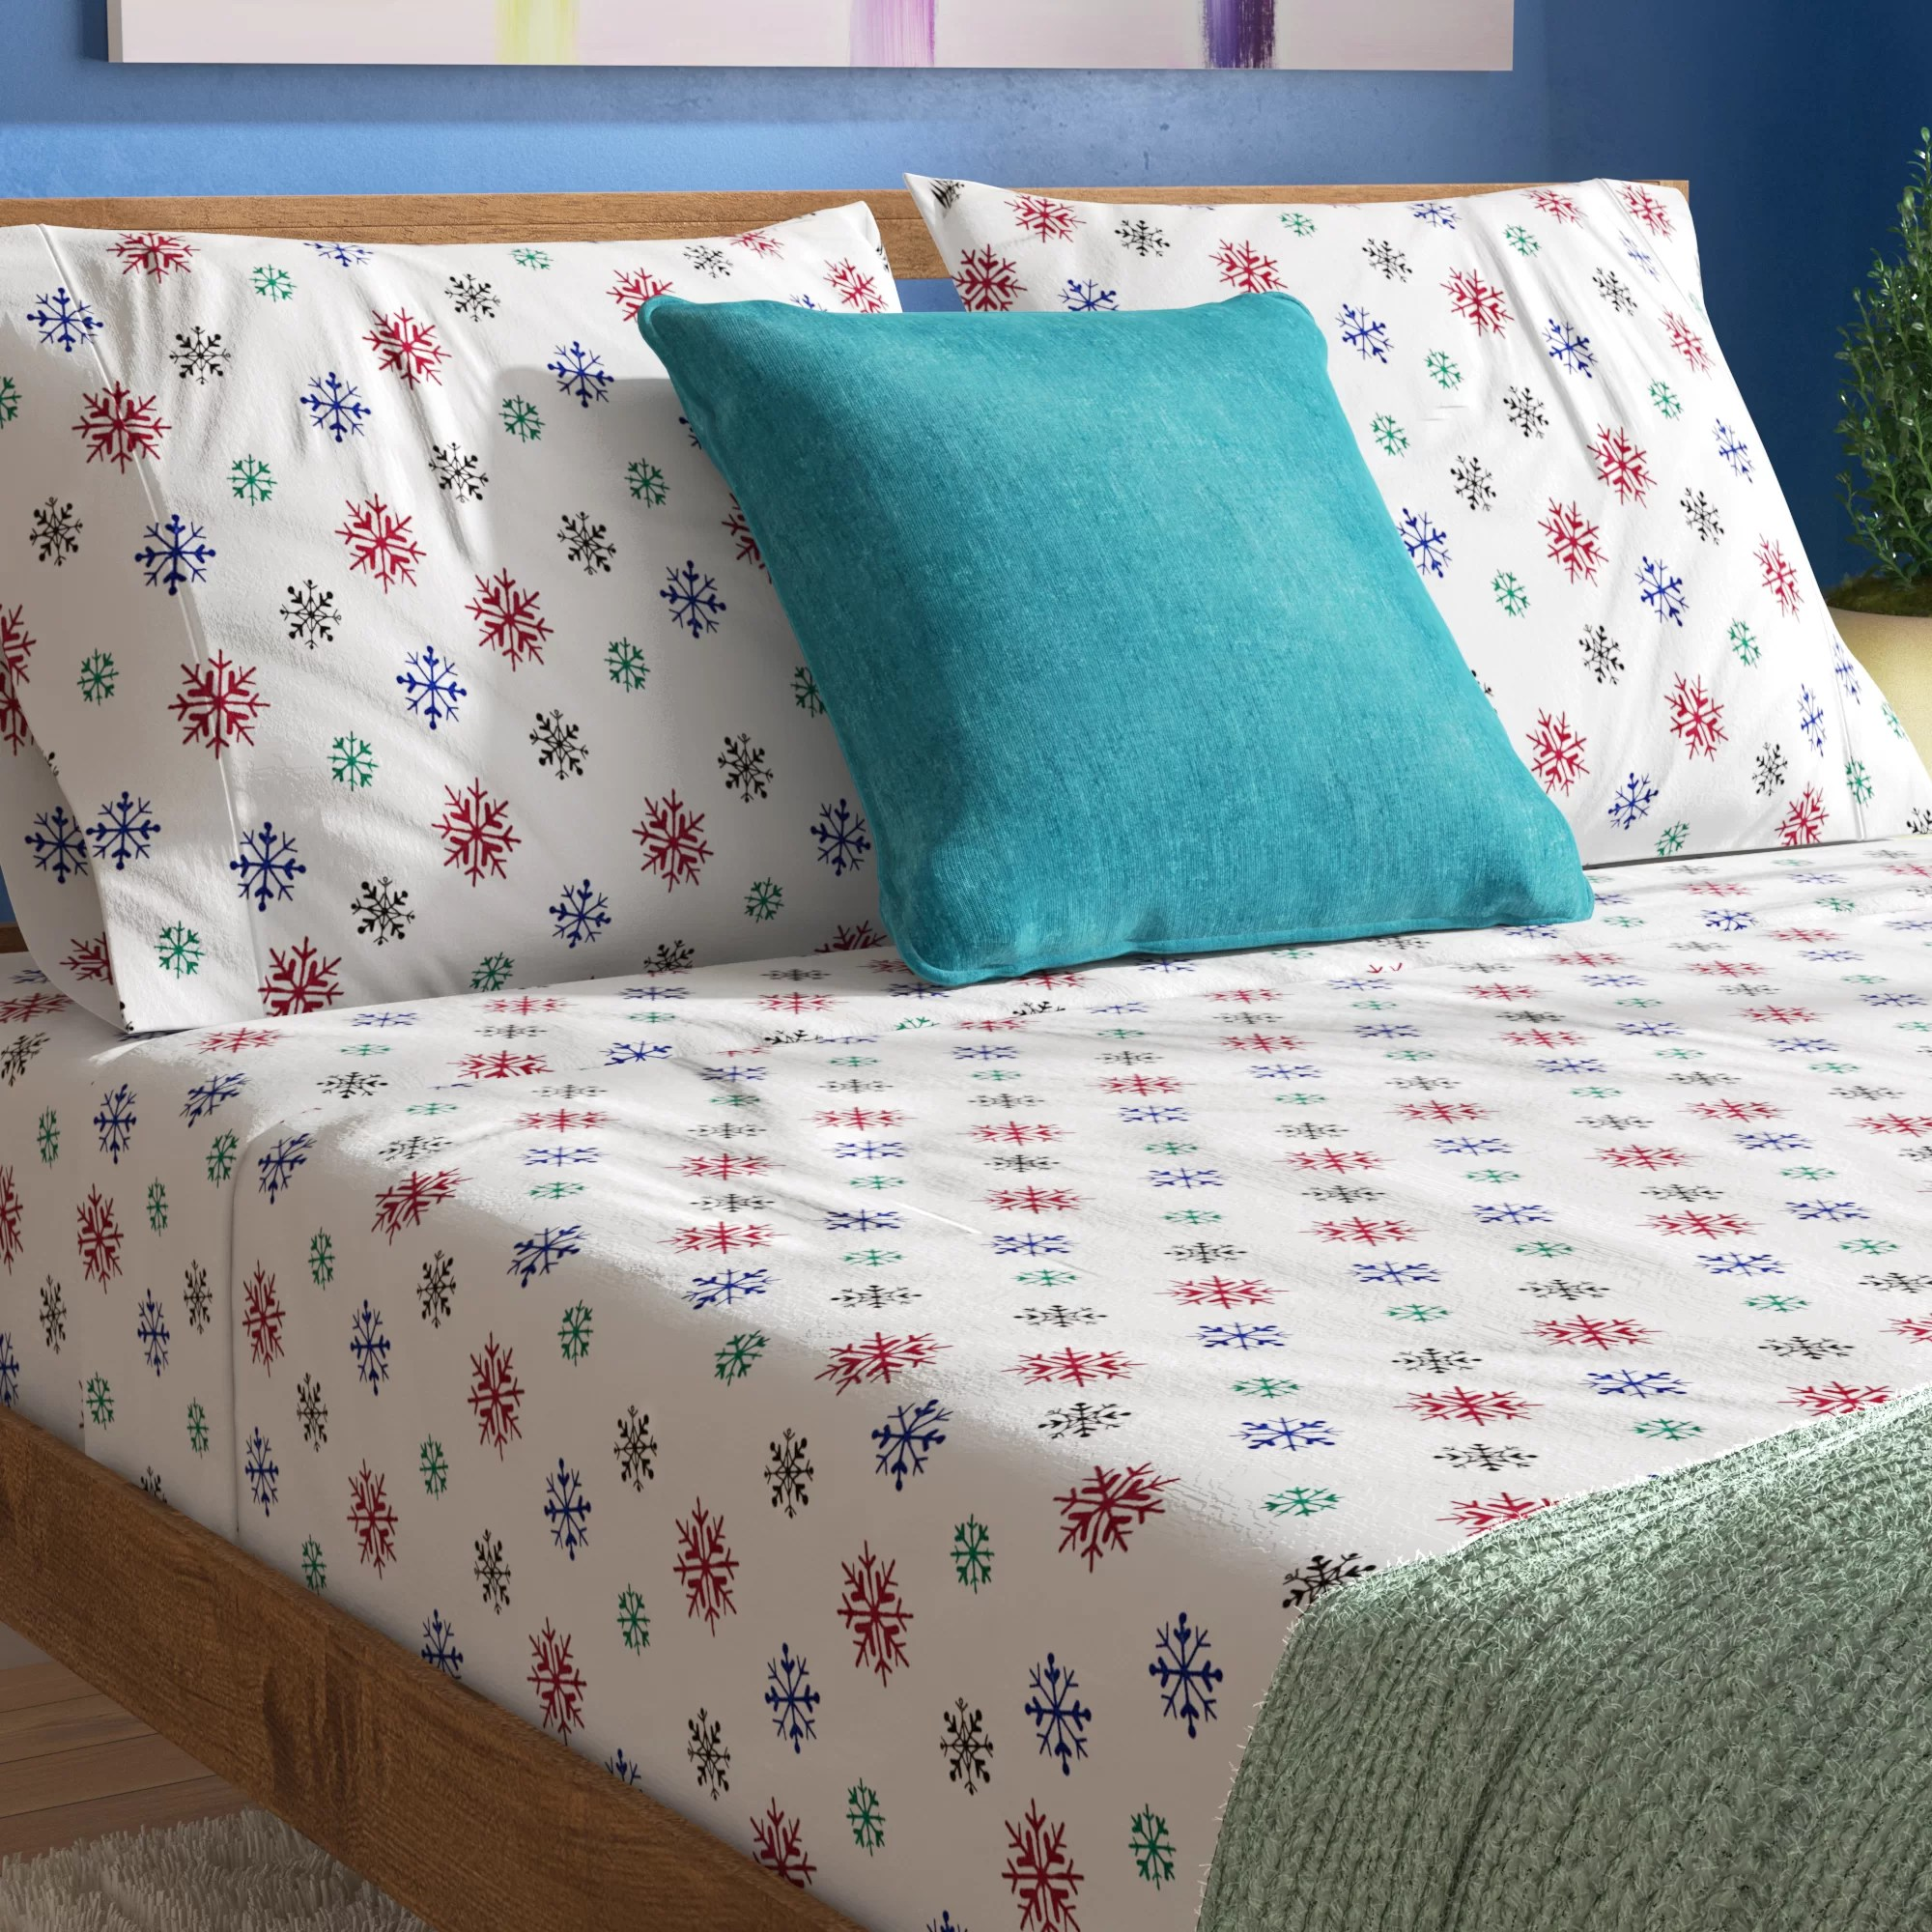 Printed Sheet Sets Godalming Heavy Weight Snow Flakes Printed Flannel Sheet Set